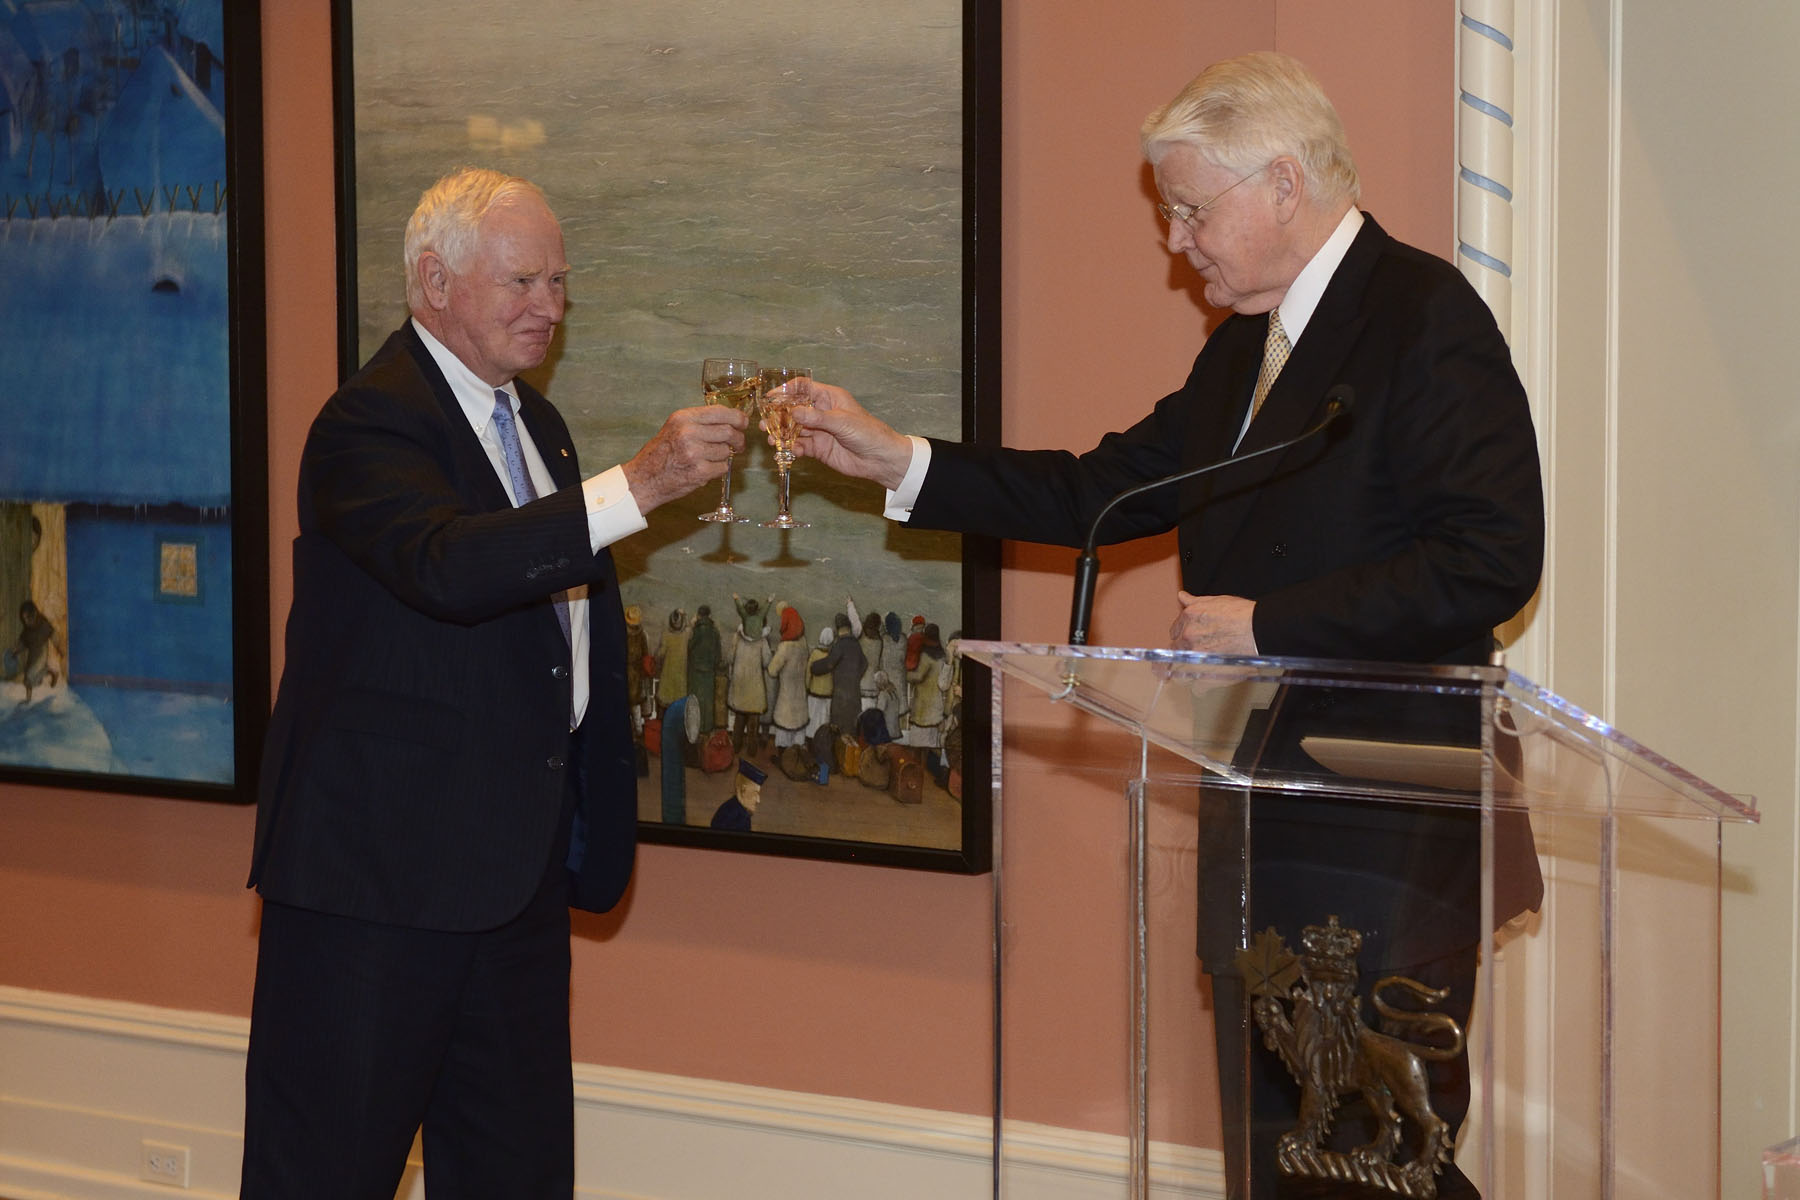 ...and offered a toast to our two countries.